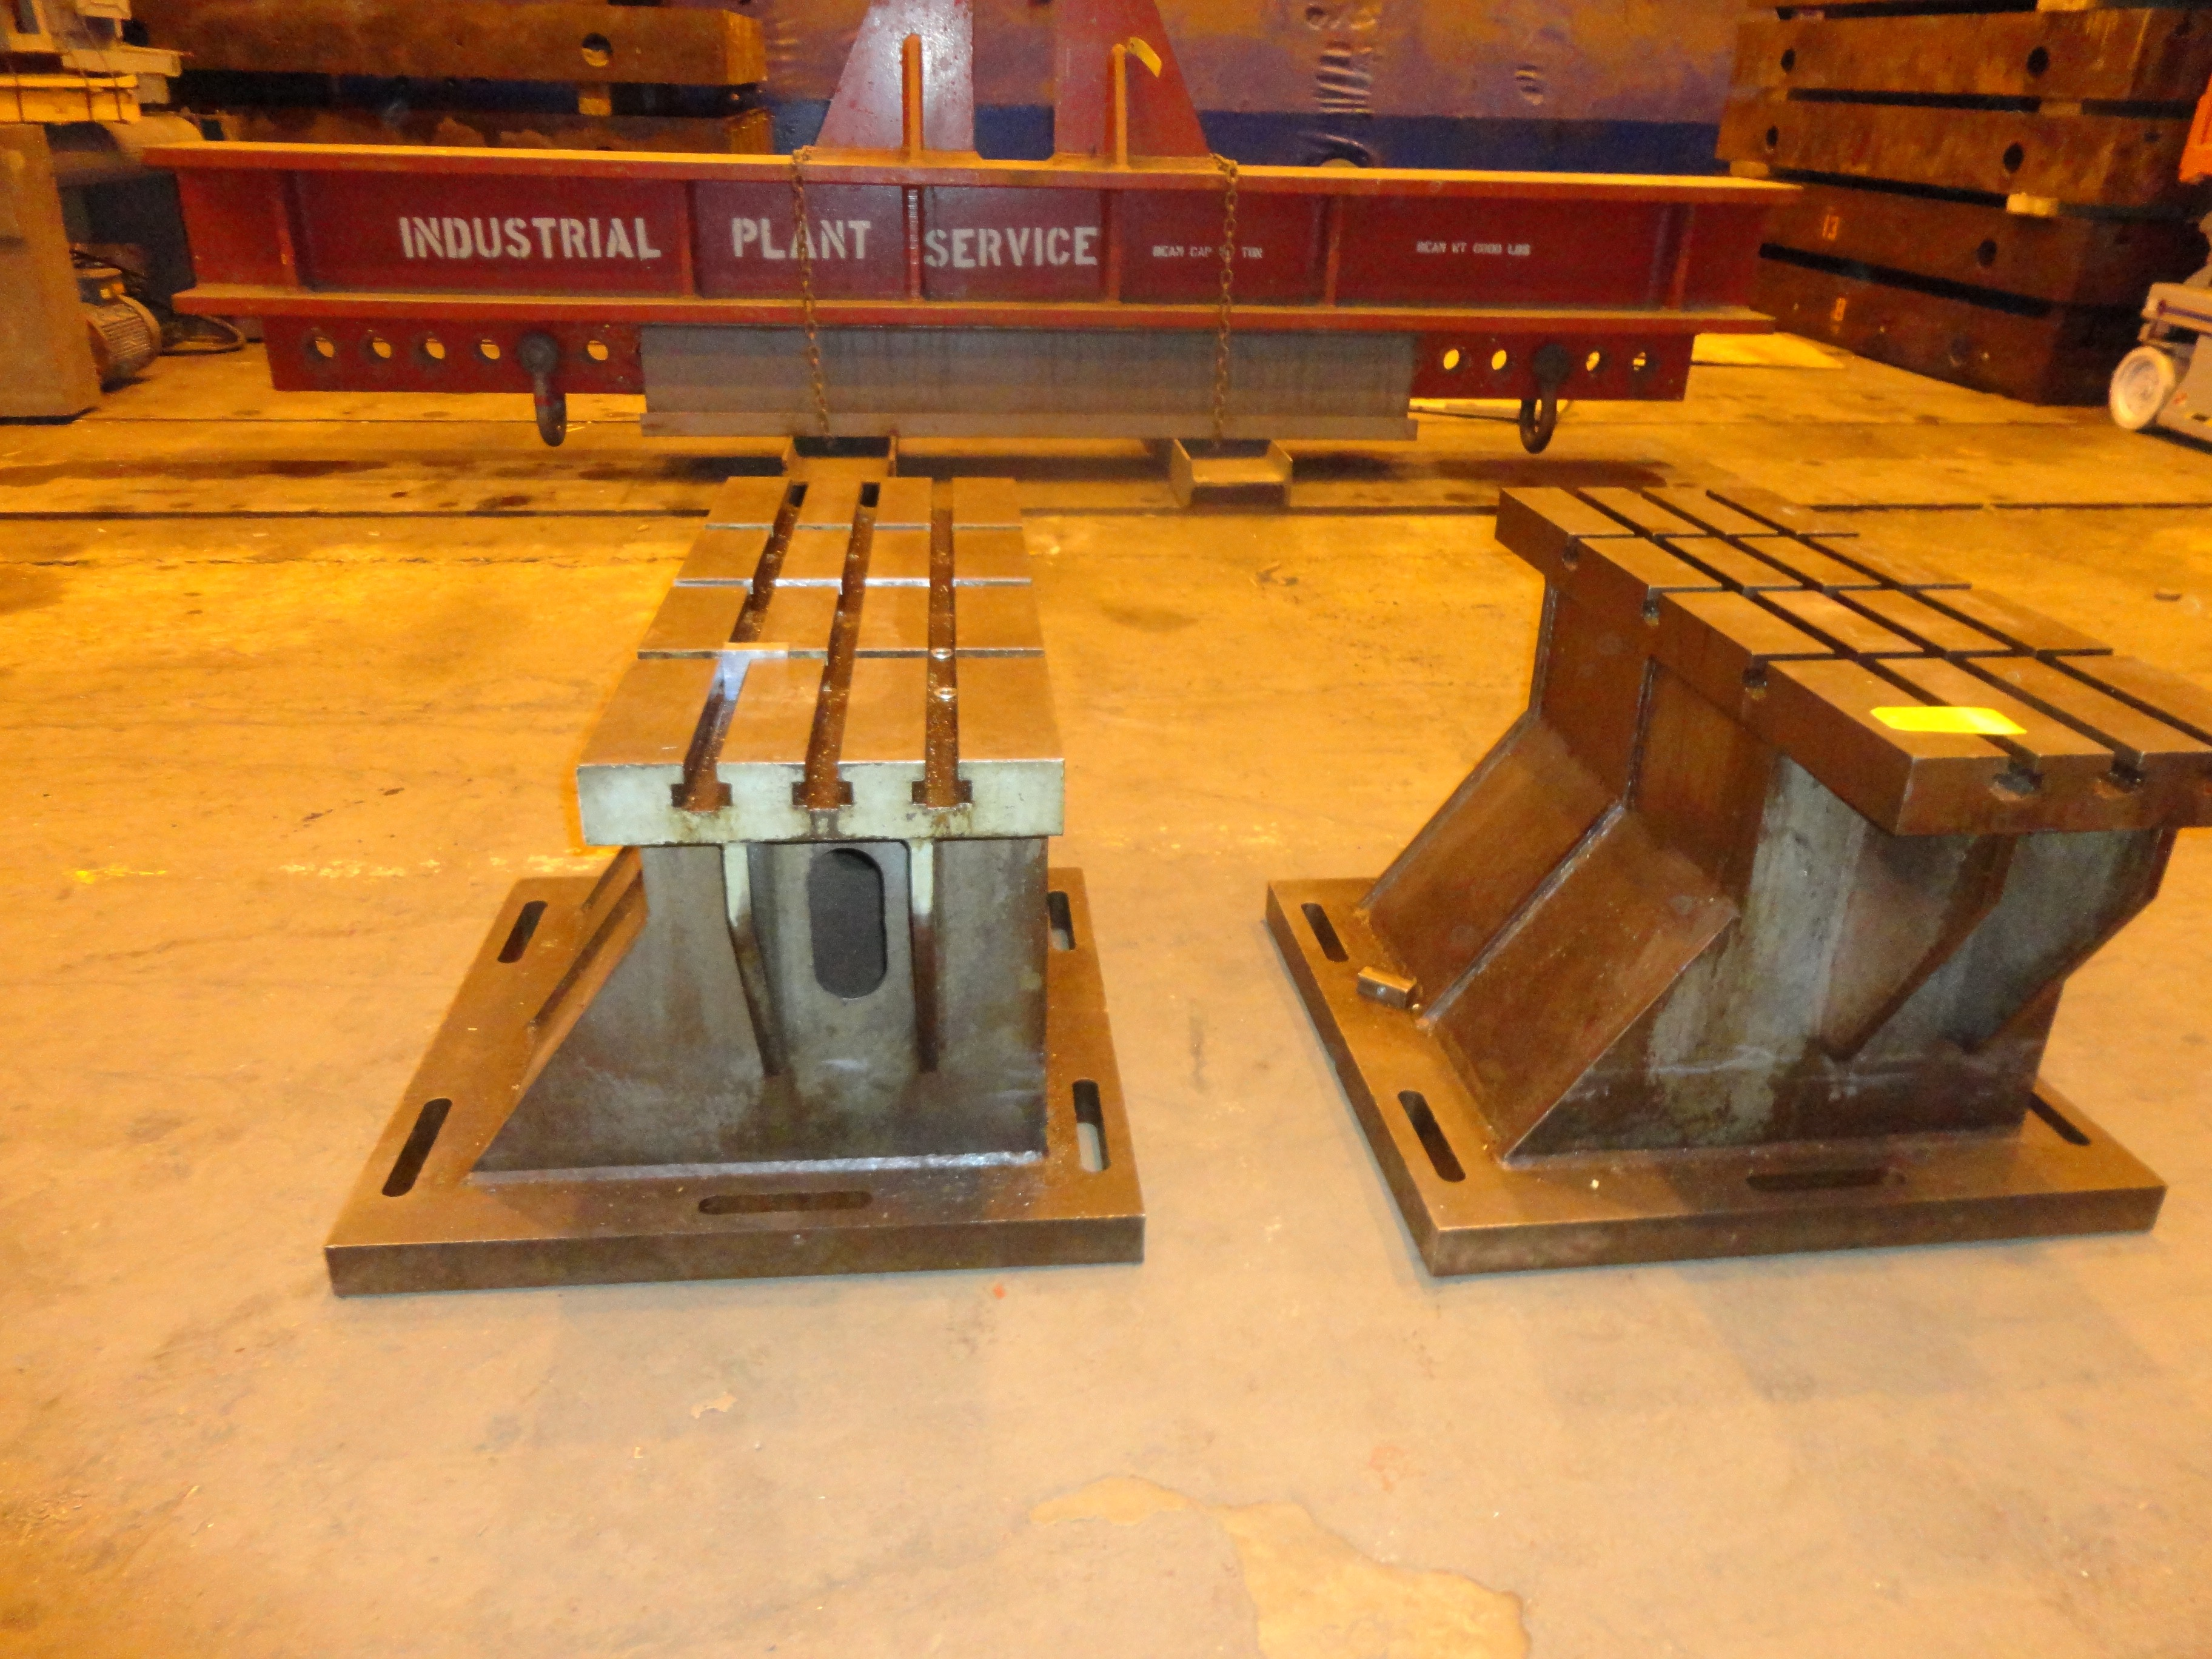 """Set of 2 T-Slotted Riser Blocks Knee Hold Down Plates 42""""L x 16"""" W x 25""""H - Image 11 of 13"""